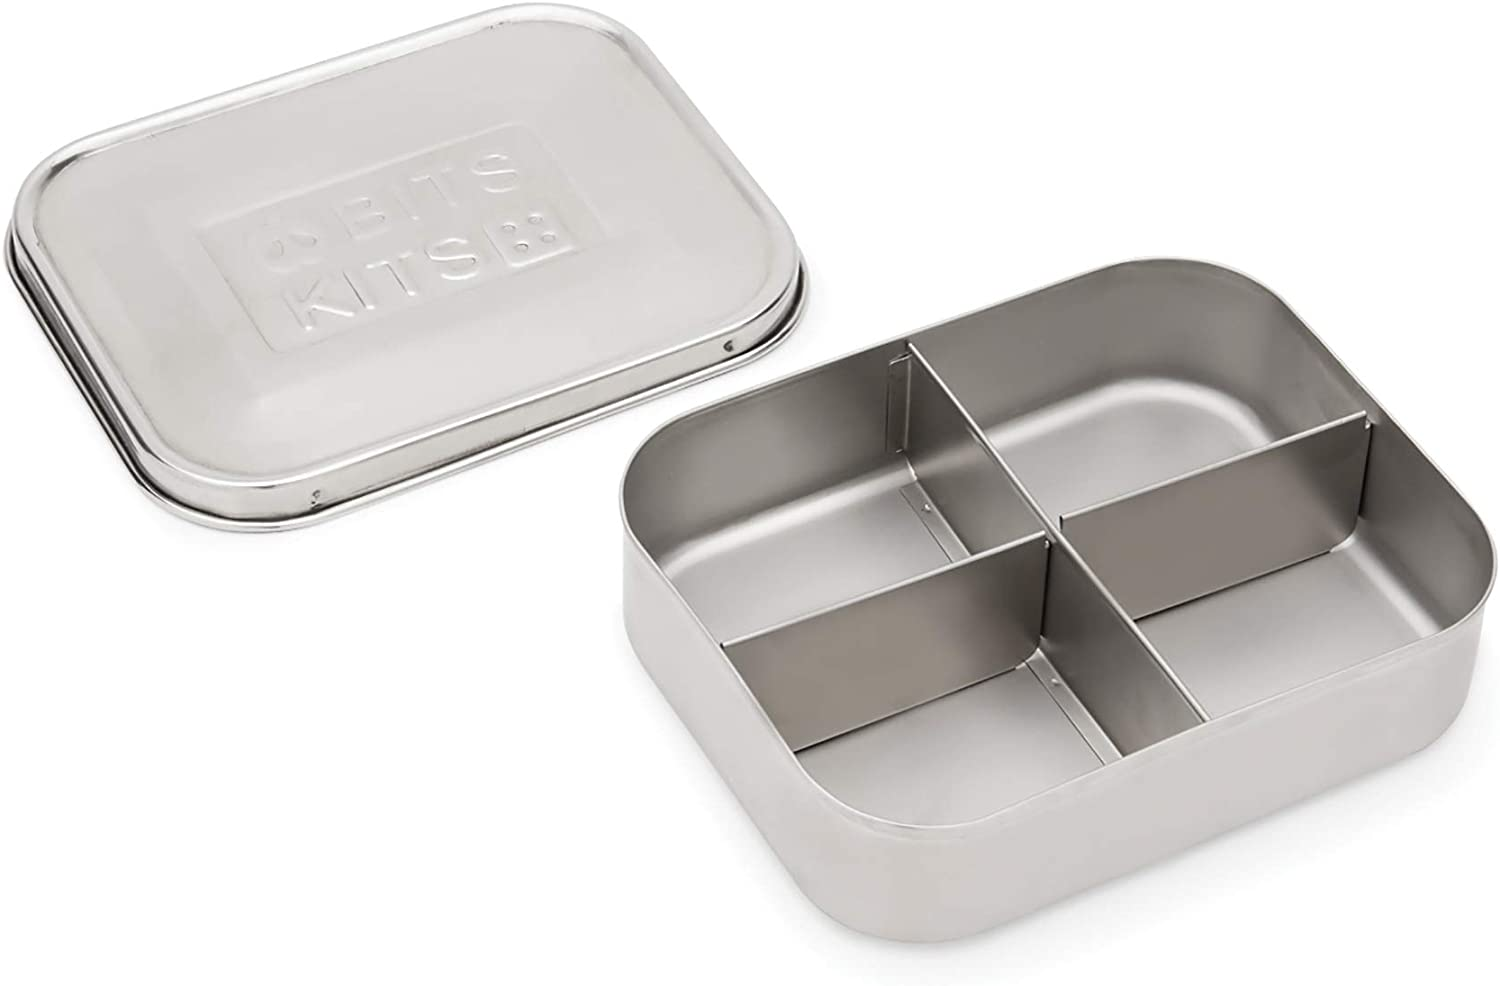 Bits Kits Stainless Steel Bento Box Lunch and Snack Container for Kids and Adults, 4 Sections